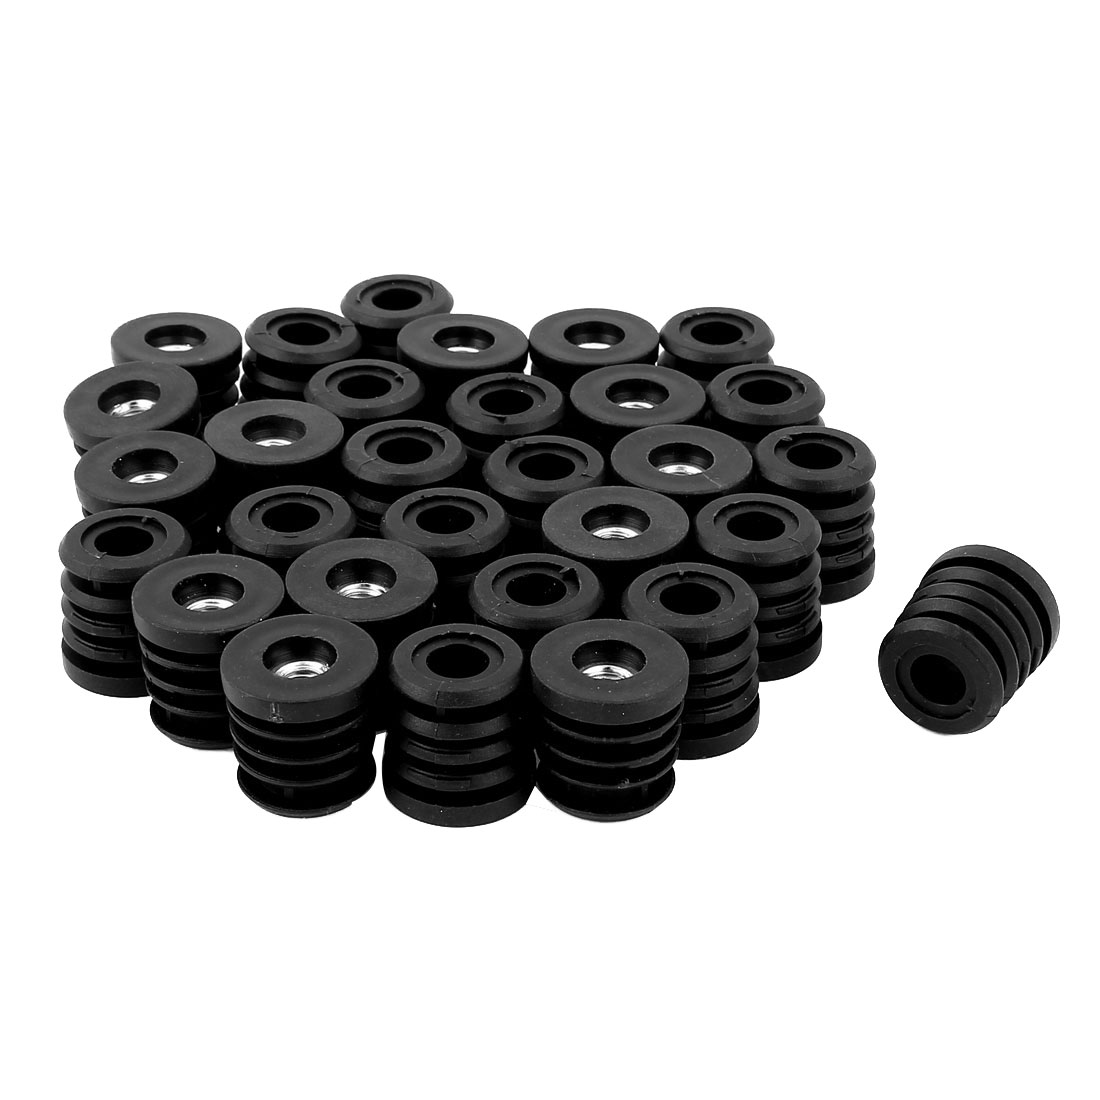 Furniture 7mmx25mm Screw Type Round Threaded Tubing Insert Caps Covers 30 Pcs